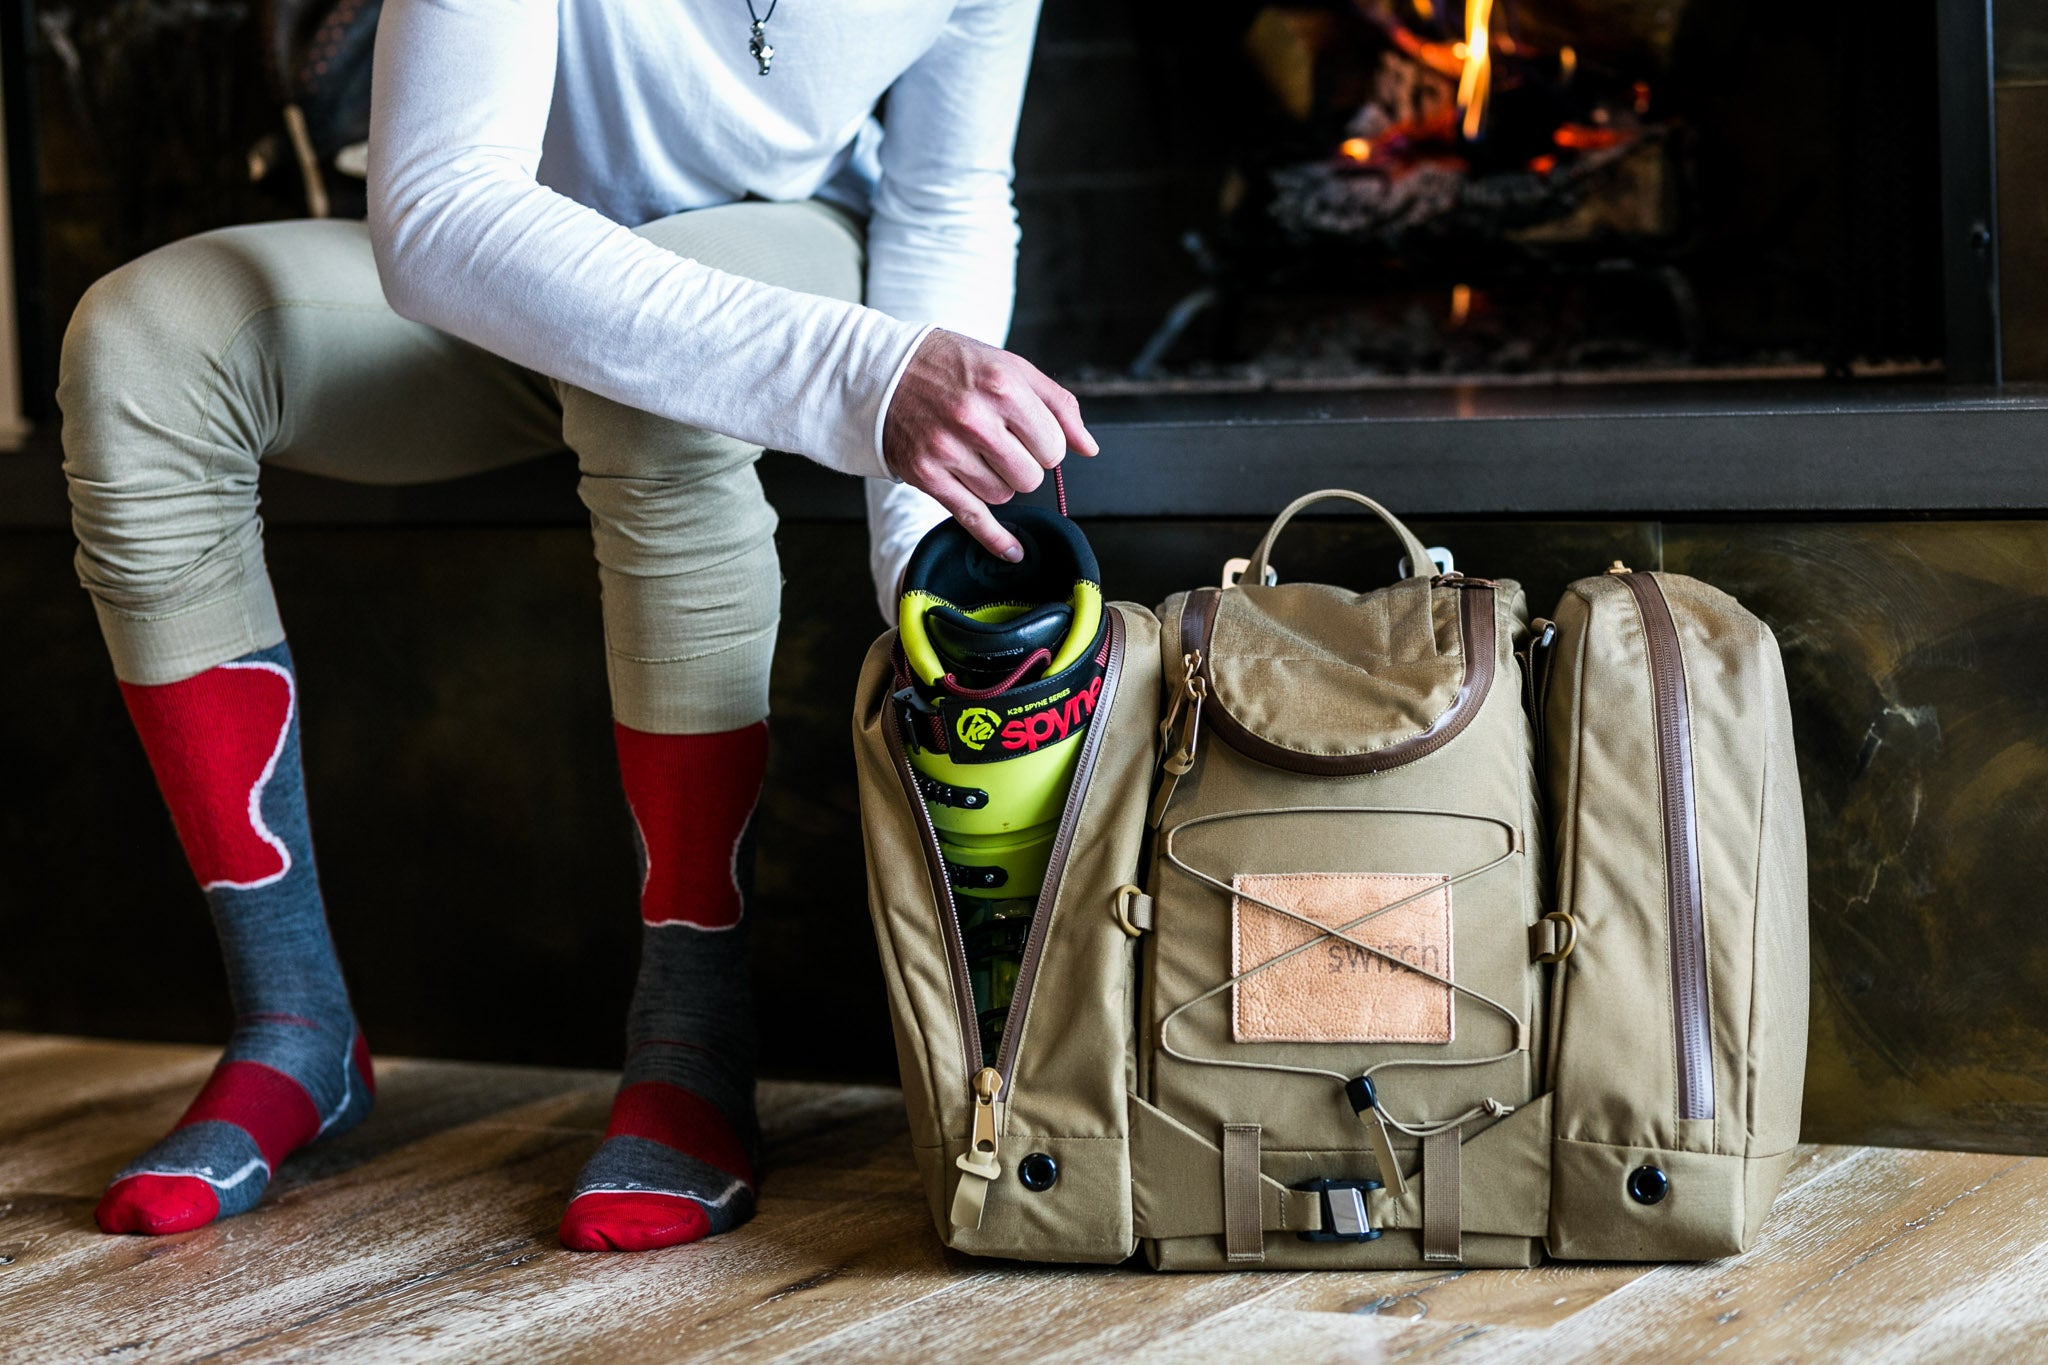 skier placing skiboot in tan Switch bootbag